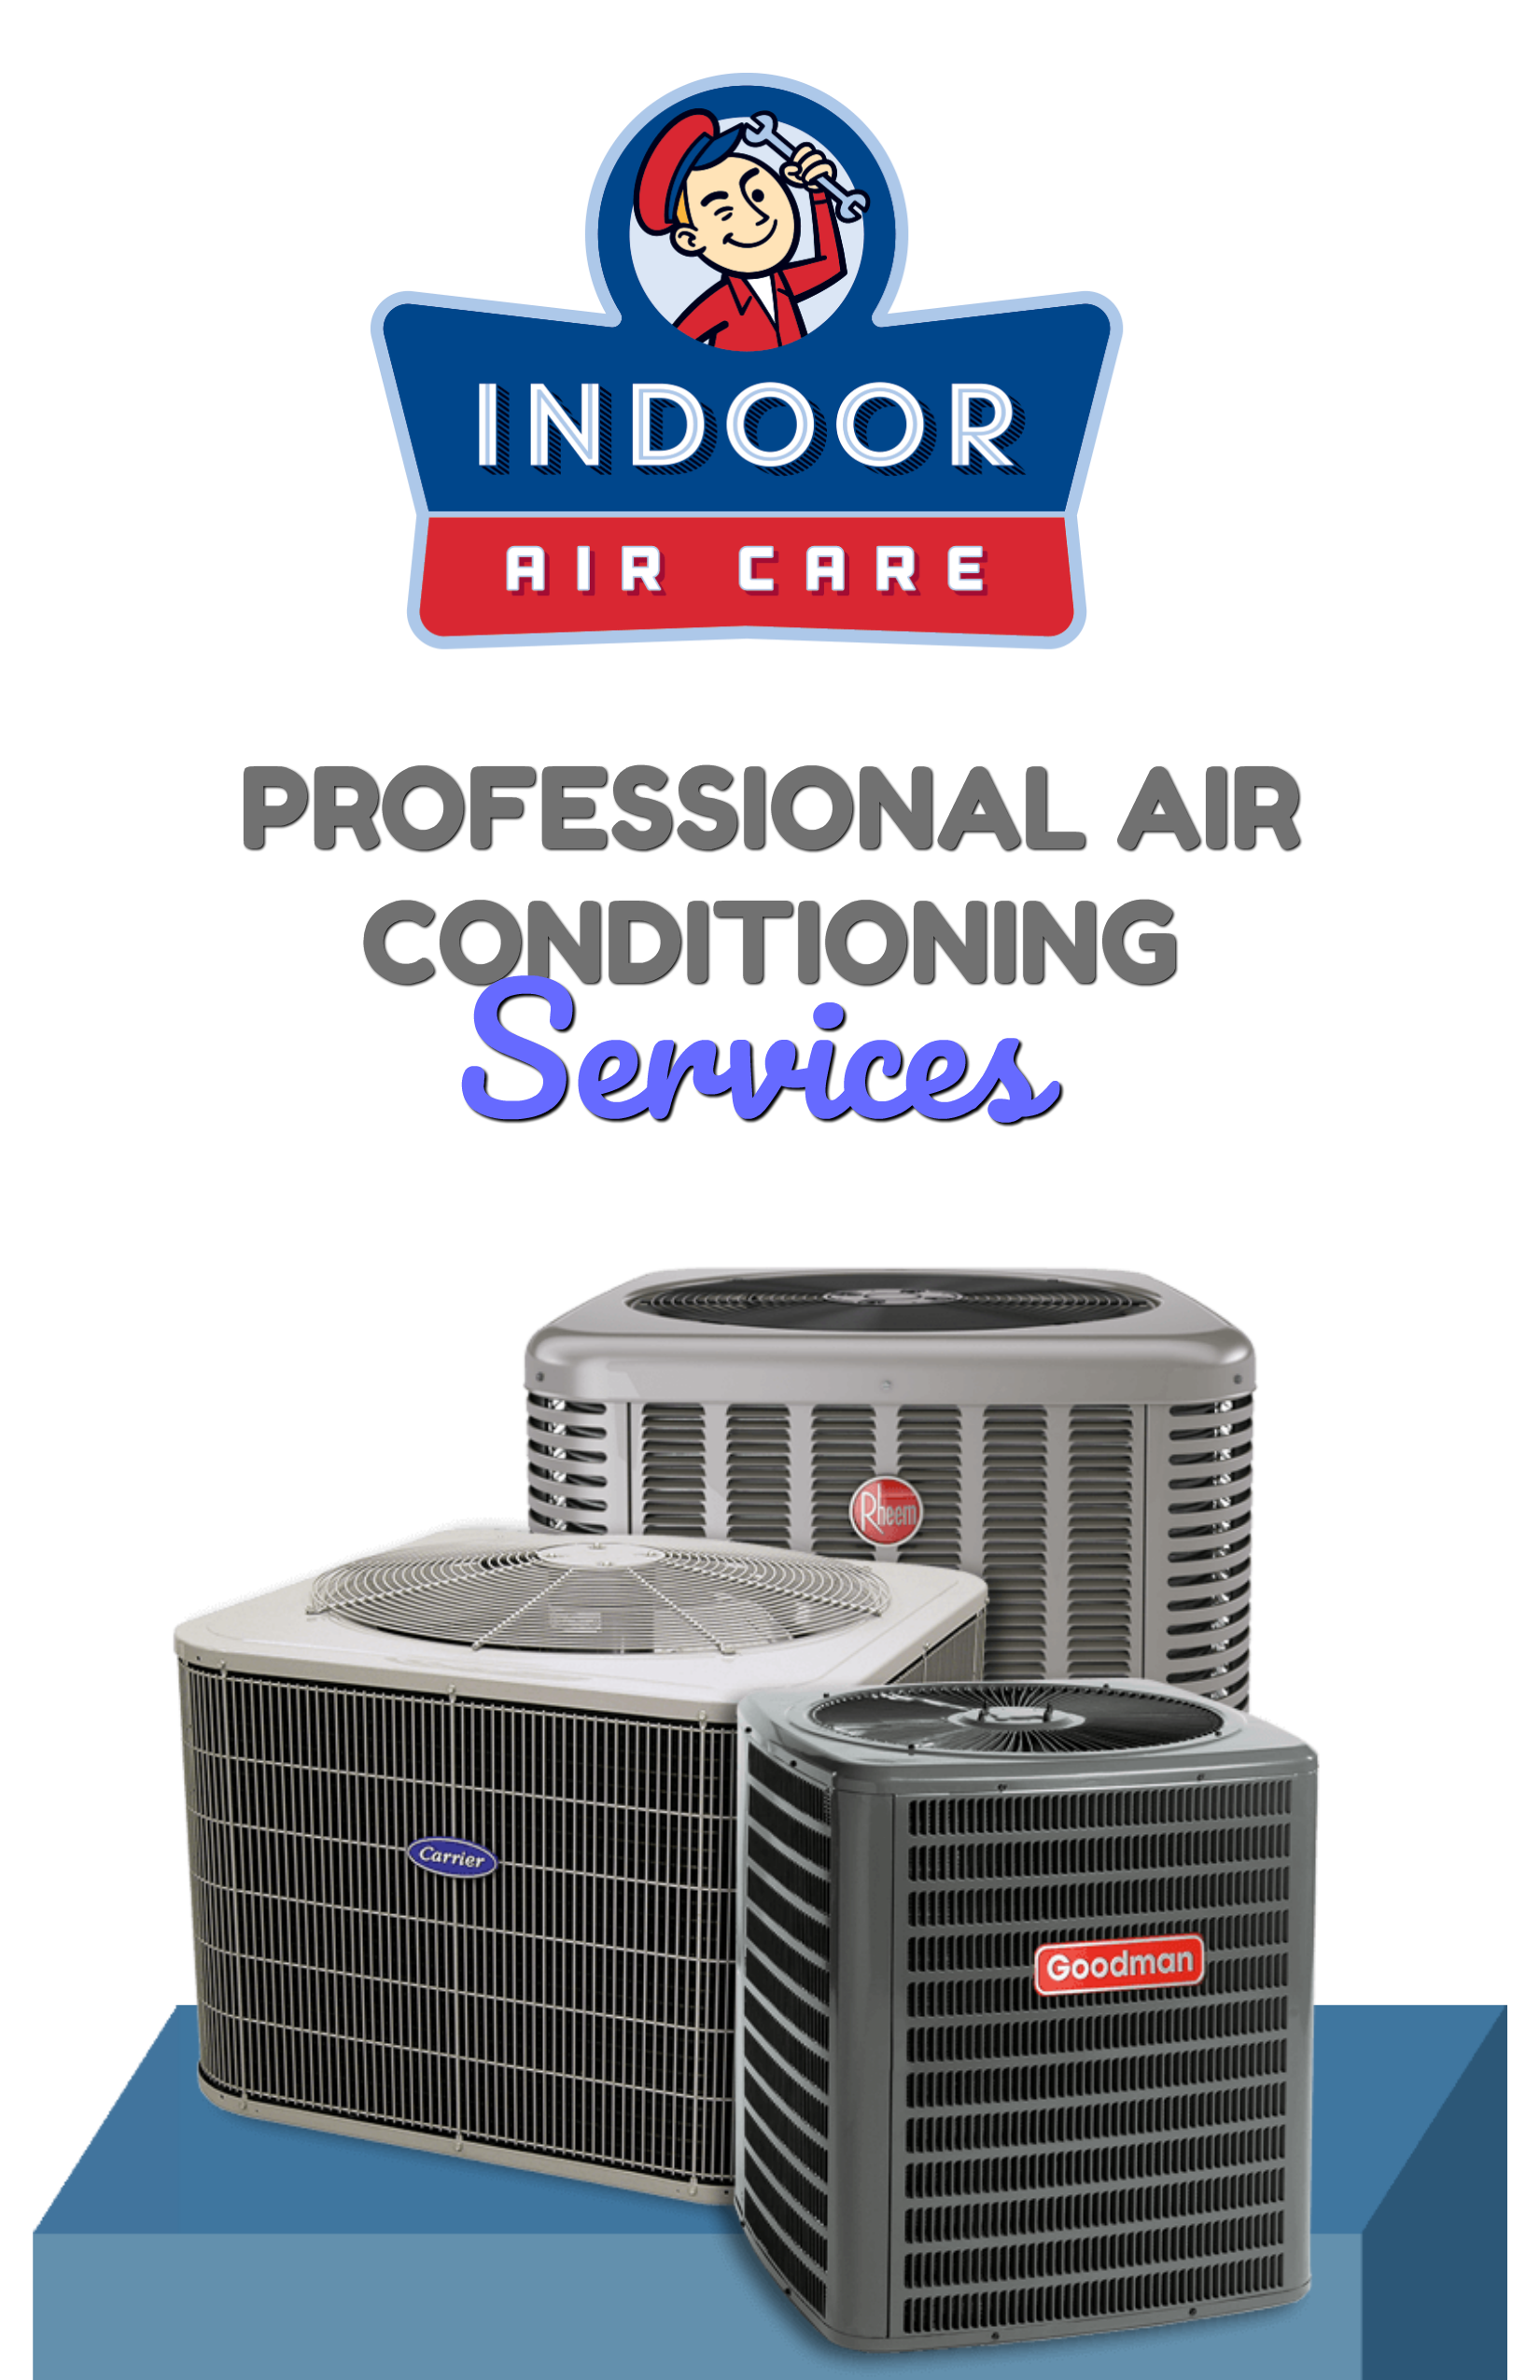 Indoor Air Care is your best option to guarantee indoor comfort and